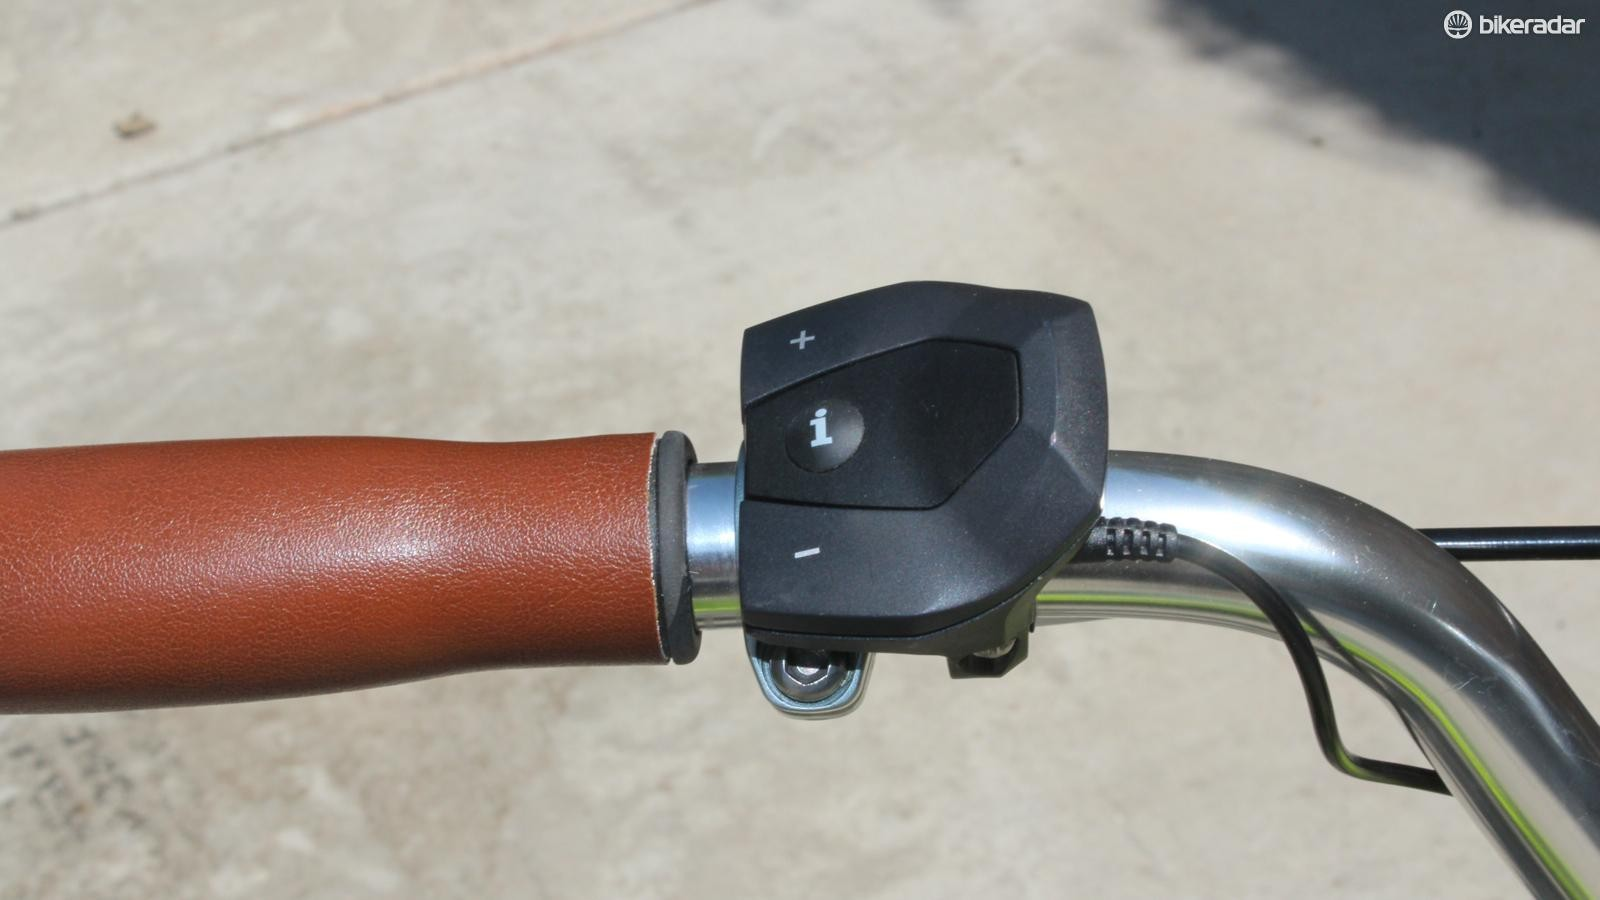 You toggle between four levels of pedal-assist - or none - with this left-side switch